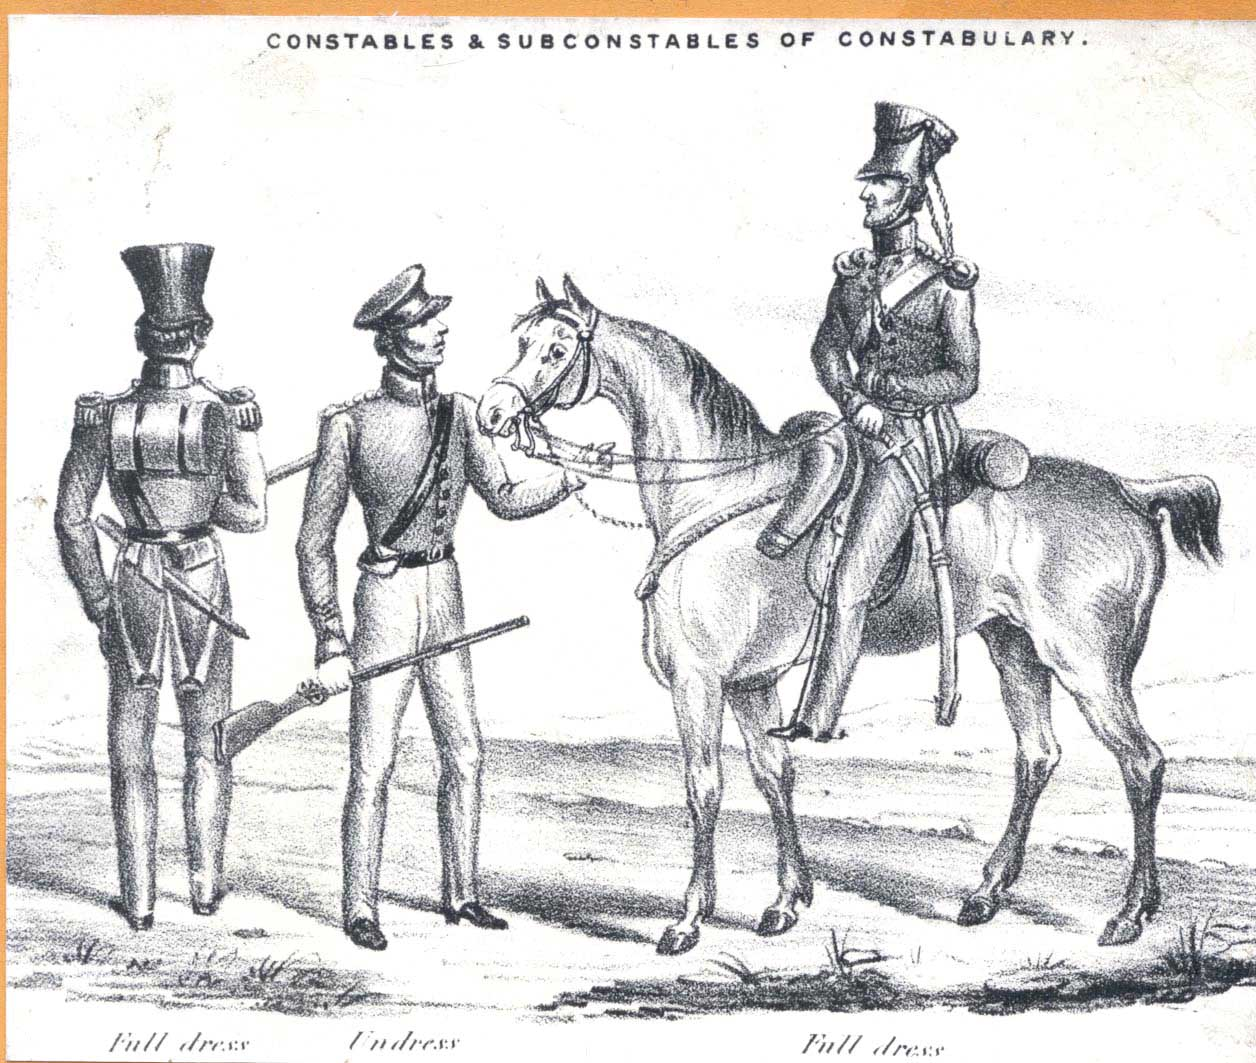 In the 1841 census members of the constabulary were delegated